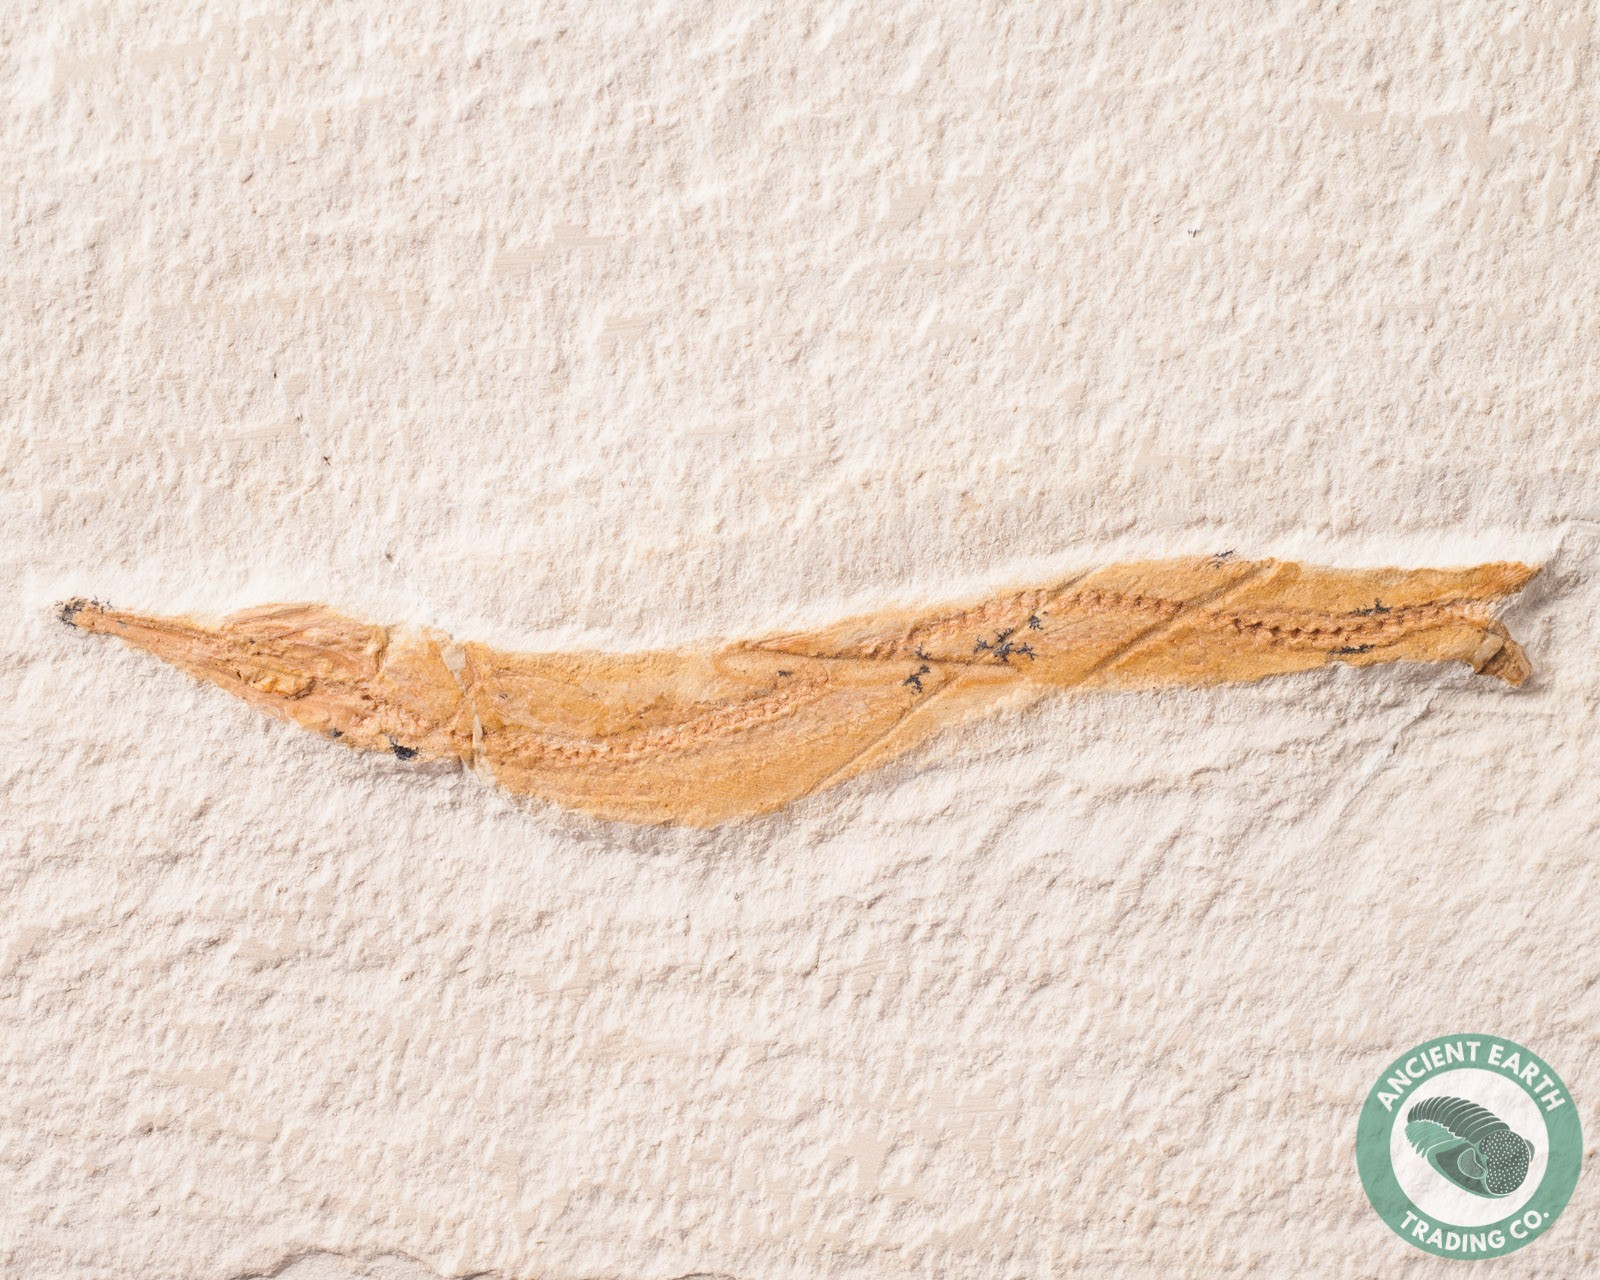 """3.28 in. Rare Needle Fish Fossil """"Throat Whale"""" Cf. Dercetis - Morocco"""